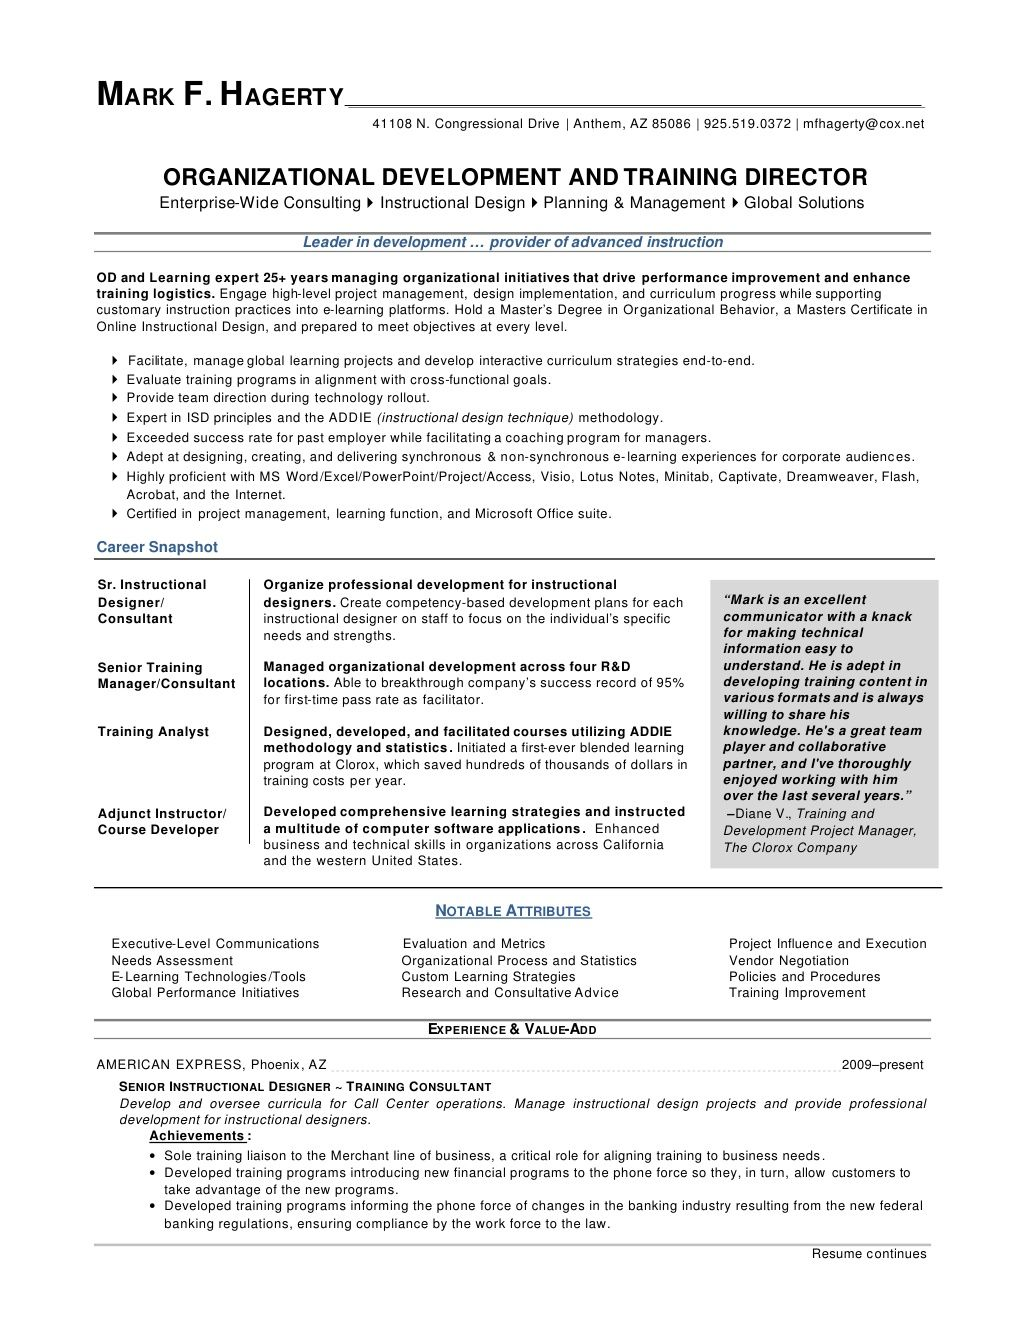 mark-f-hagerty-od-training-director-resume by mfhagerty via ...